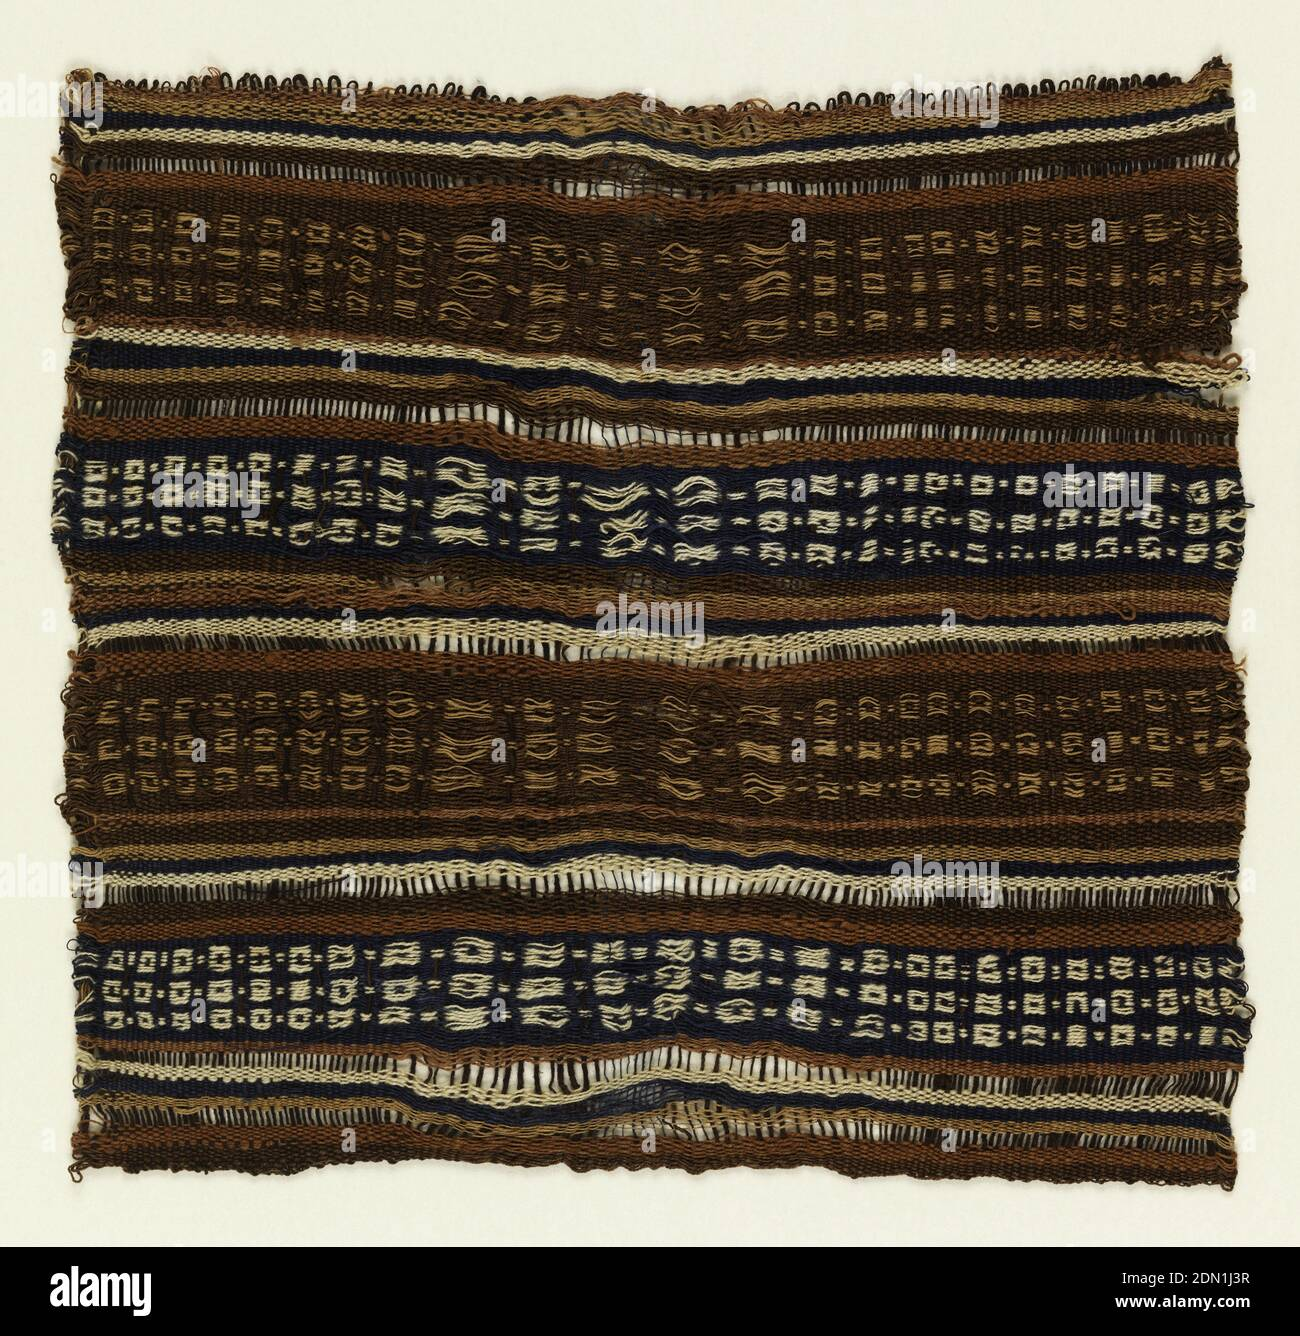 Fragment, Medium: cotton, wool Technique: warp-faced plain weave patterned by warp floats and stripes, Horizontal bands wide and narrow. Wide bands are warp-patterned in a light color on either blue or brown background. Other colors are tan and dark red. Fragment probably from a bag., Peru, 1000–1450, woven textiles, Fragment Foto de stock